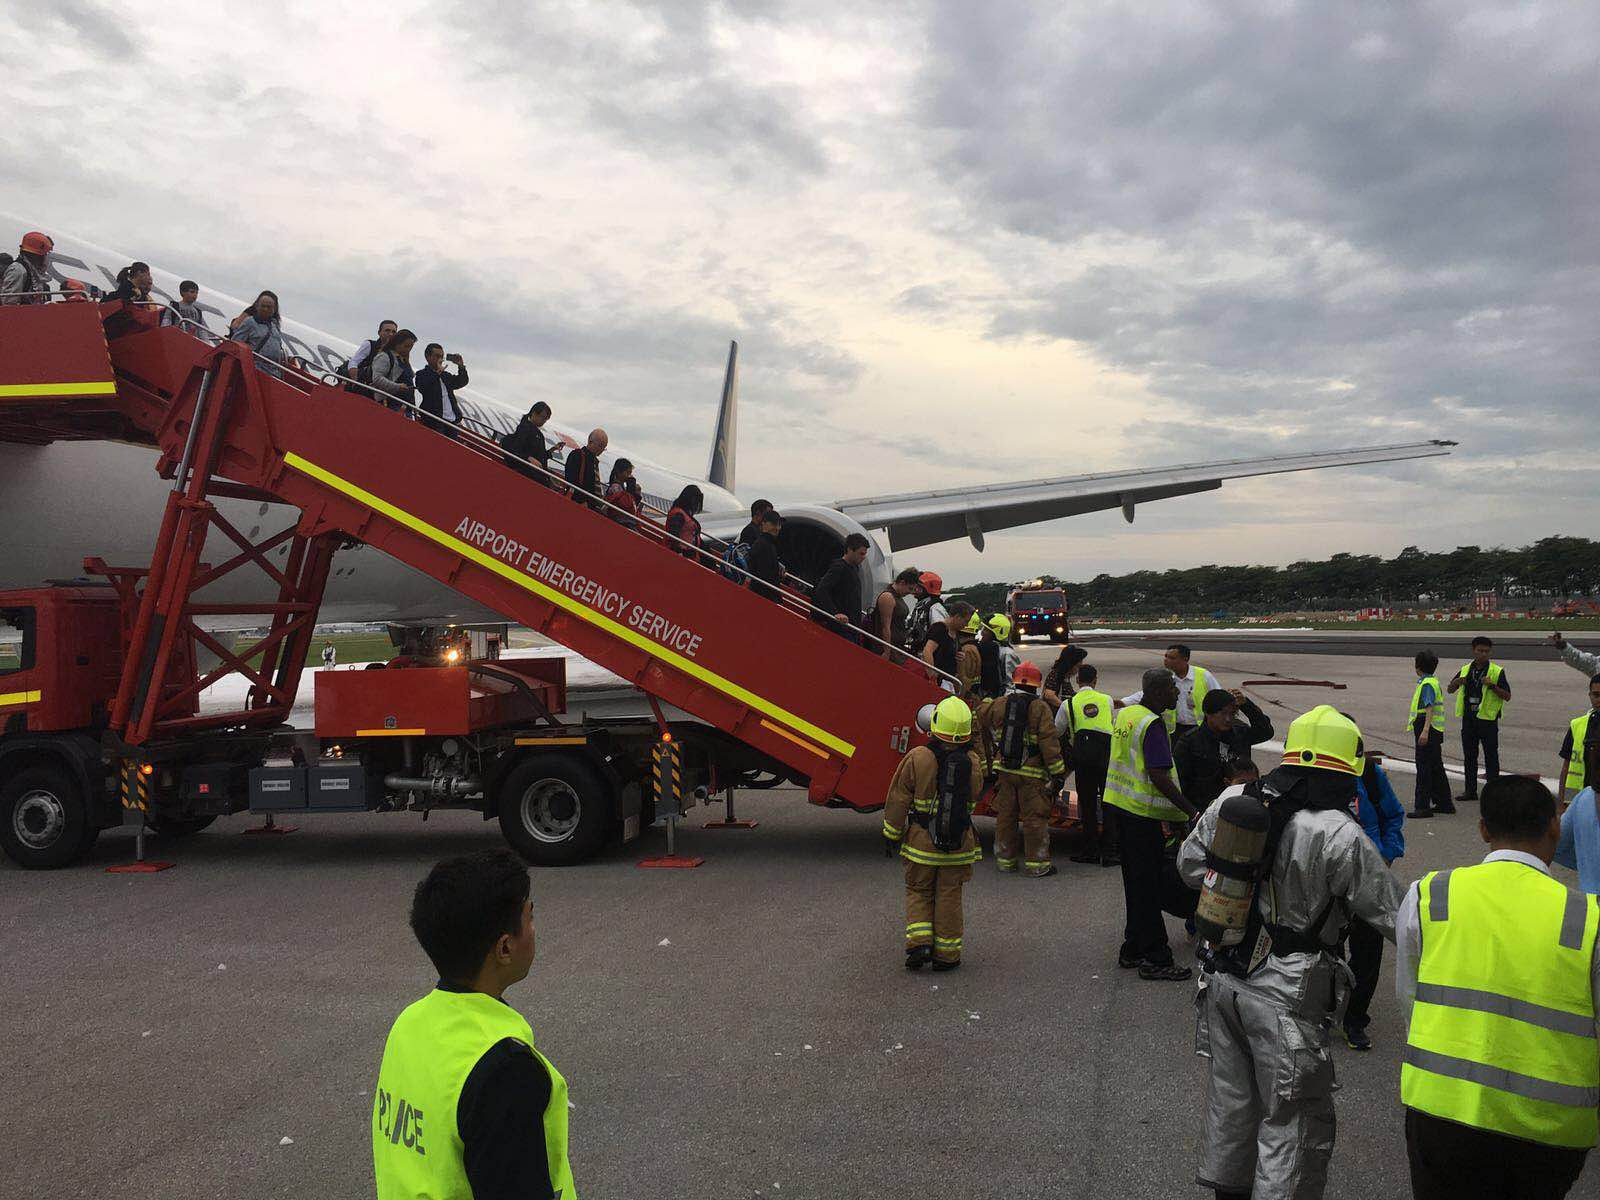 Singapore Airlines Plane Catches Fire at Singapore